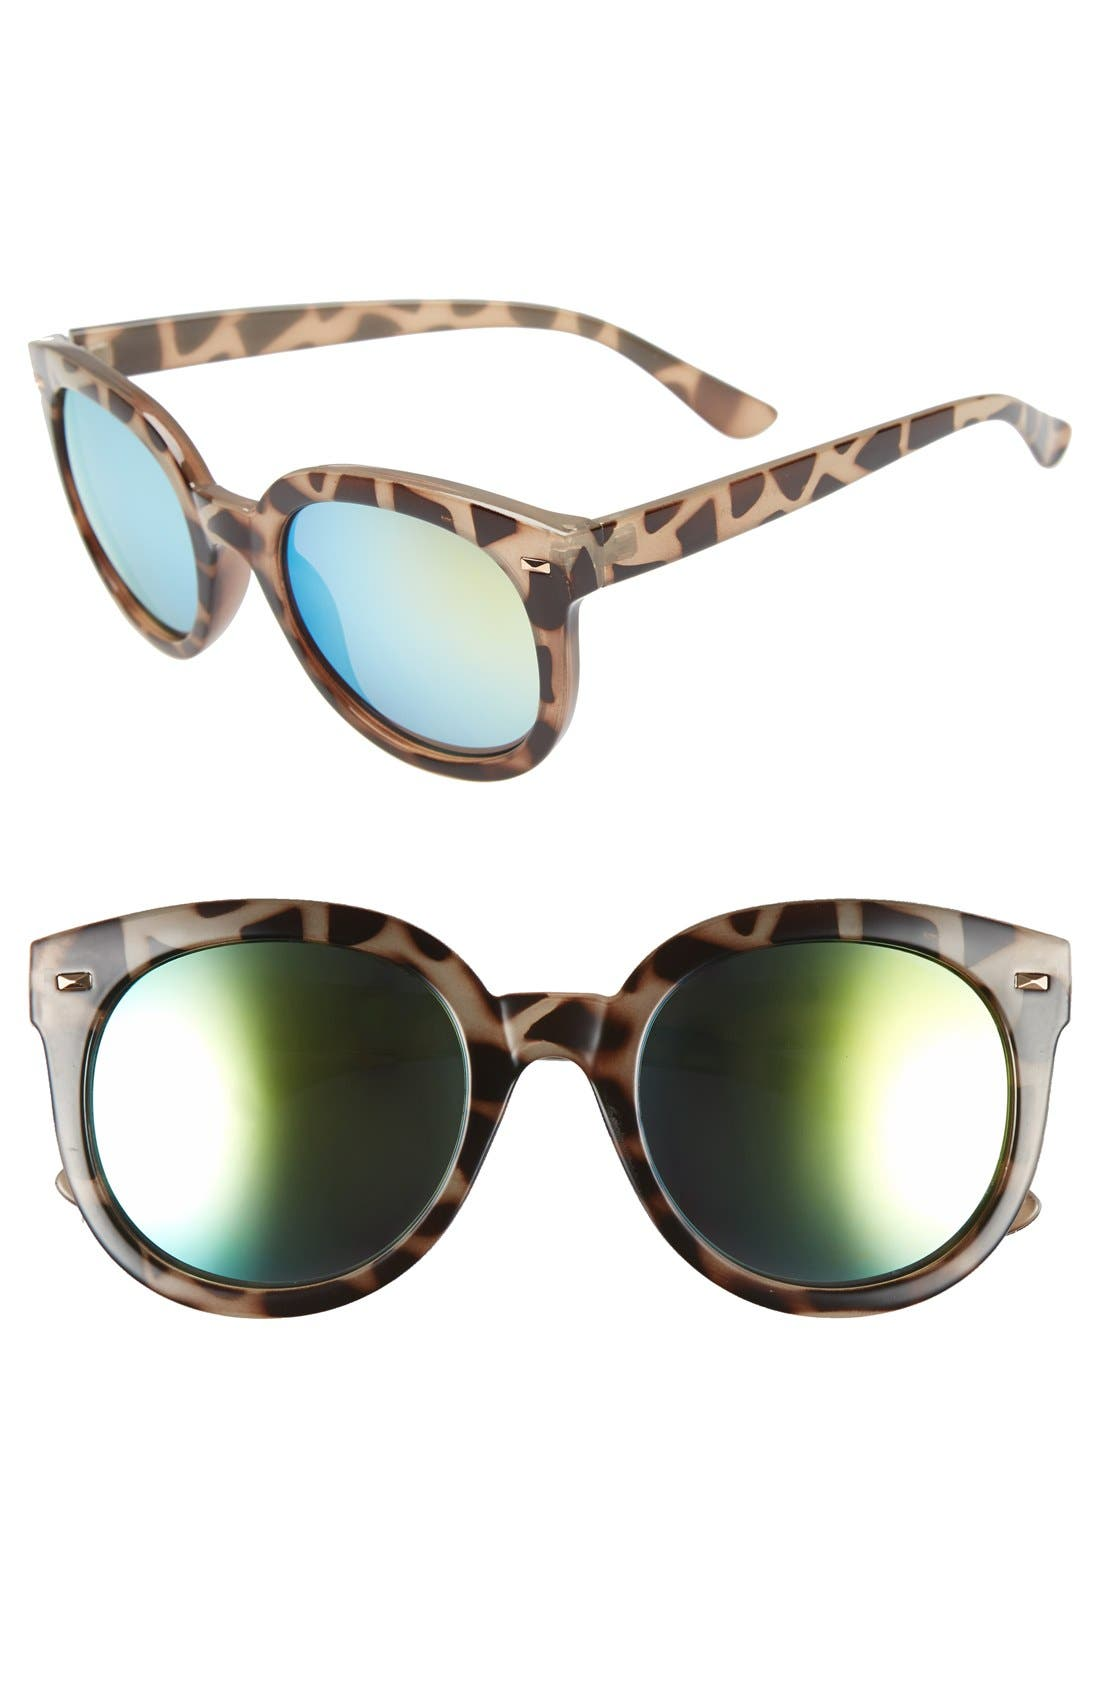 52mm Oversize Mirrored Sunglasses,                         Main,                         color,